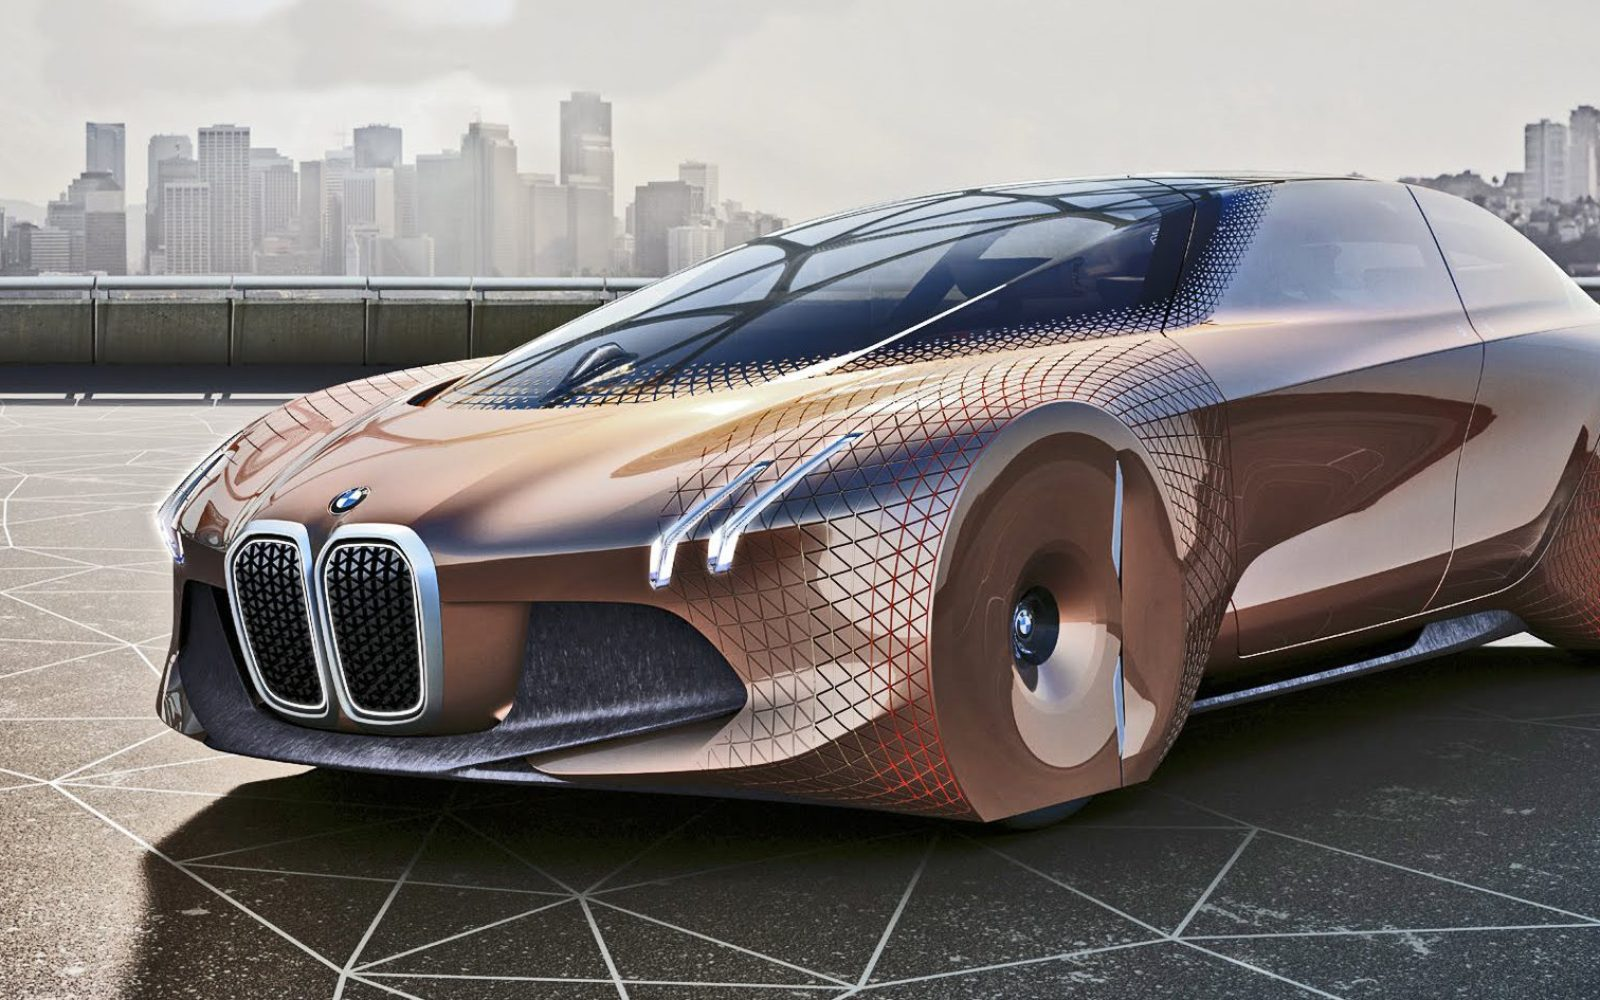 bmw u0026 39 s upcoming i5 electric car would actually be a tesla model 3